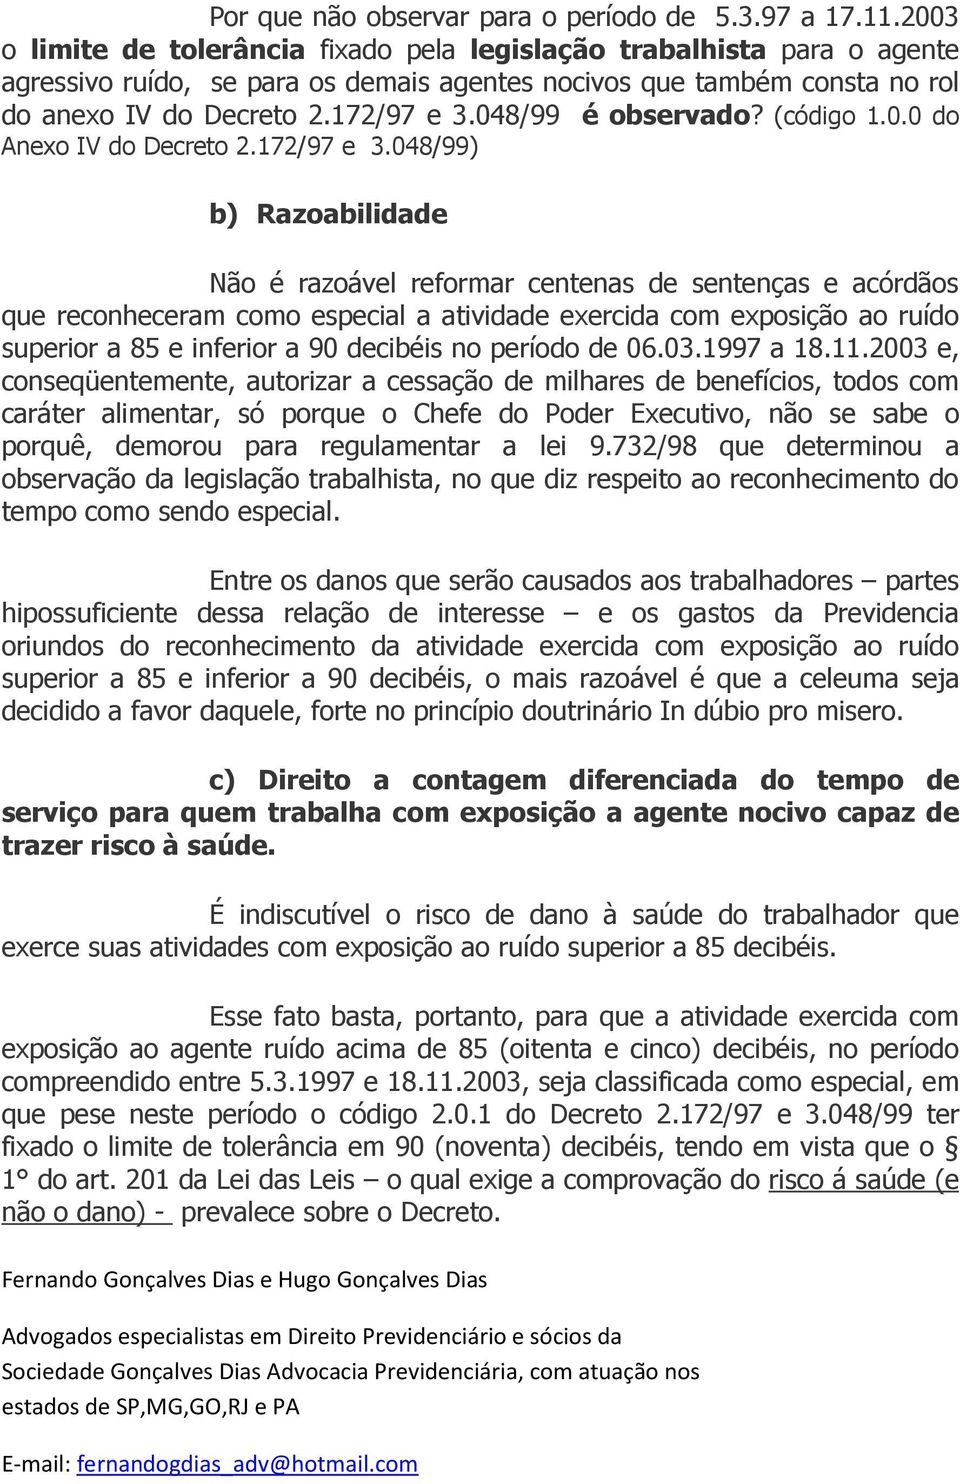 048/99 é observado? (código 1.0.0 do Anexo IV do Decreto 2.172/97 e 3.